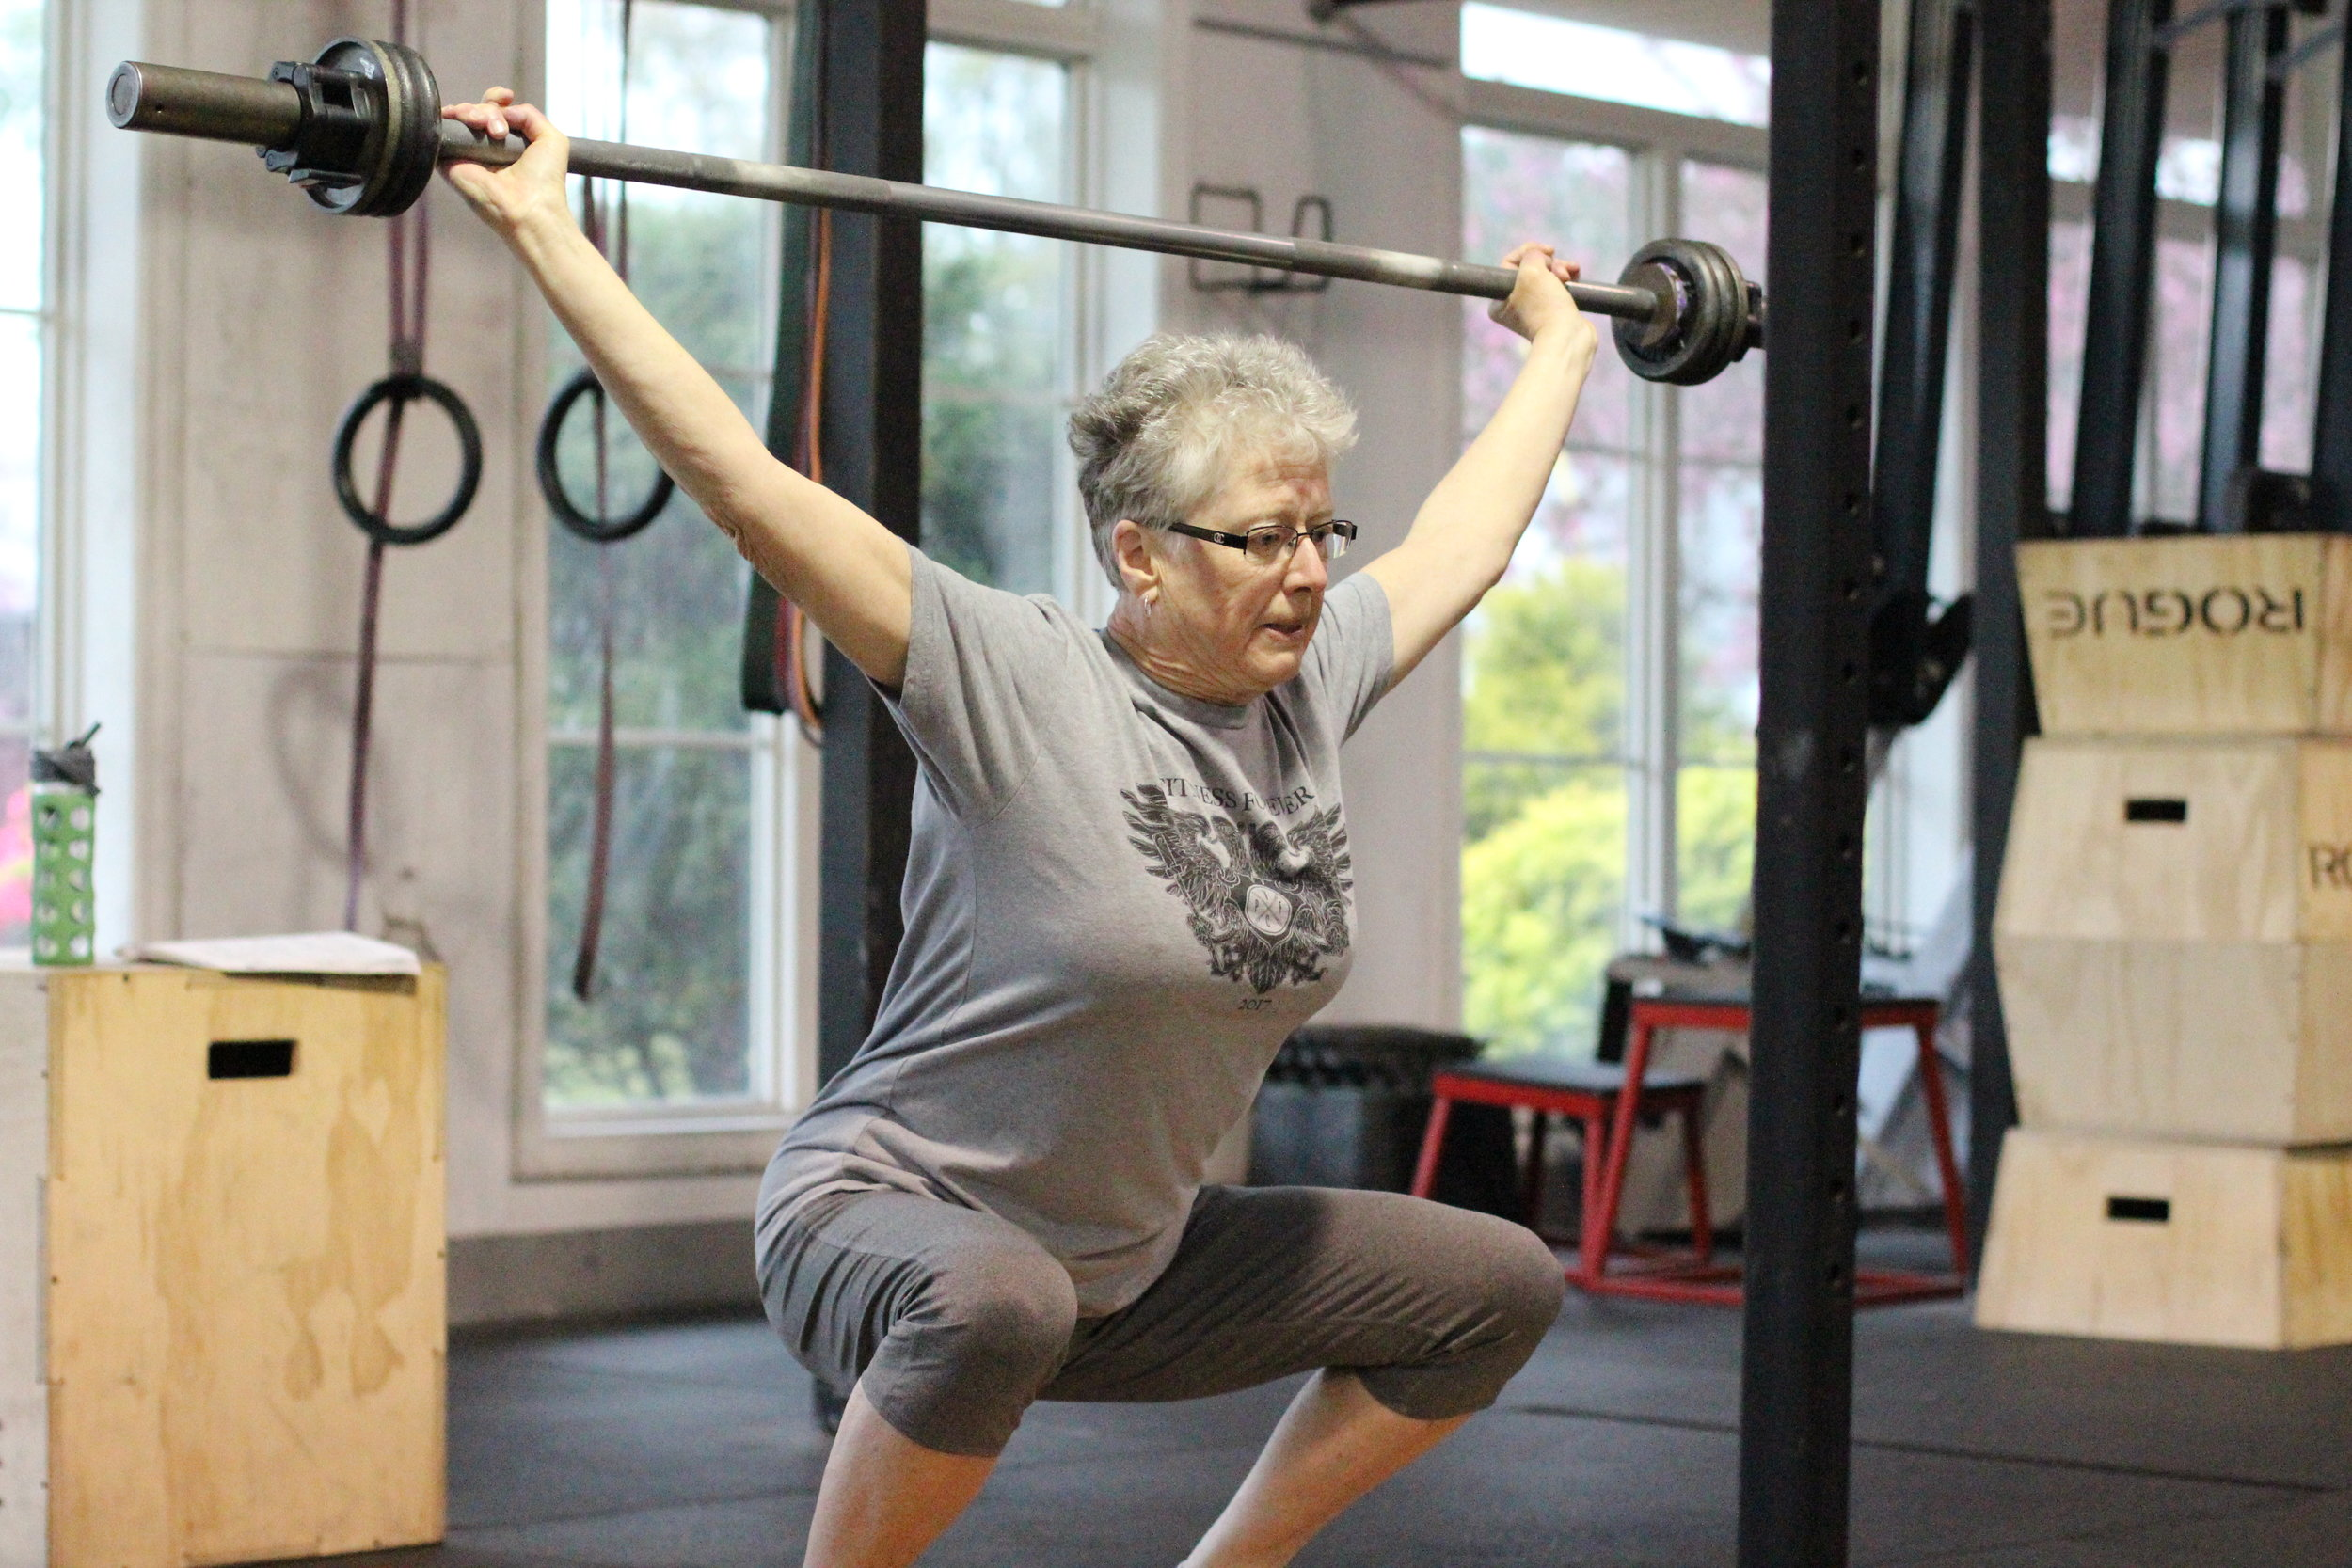 PVCF athlete, Freida Guillette demonstrates balance and poise during the snatch!